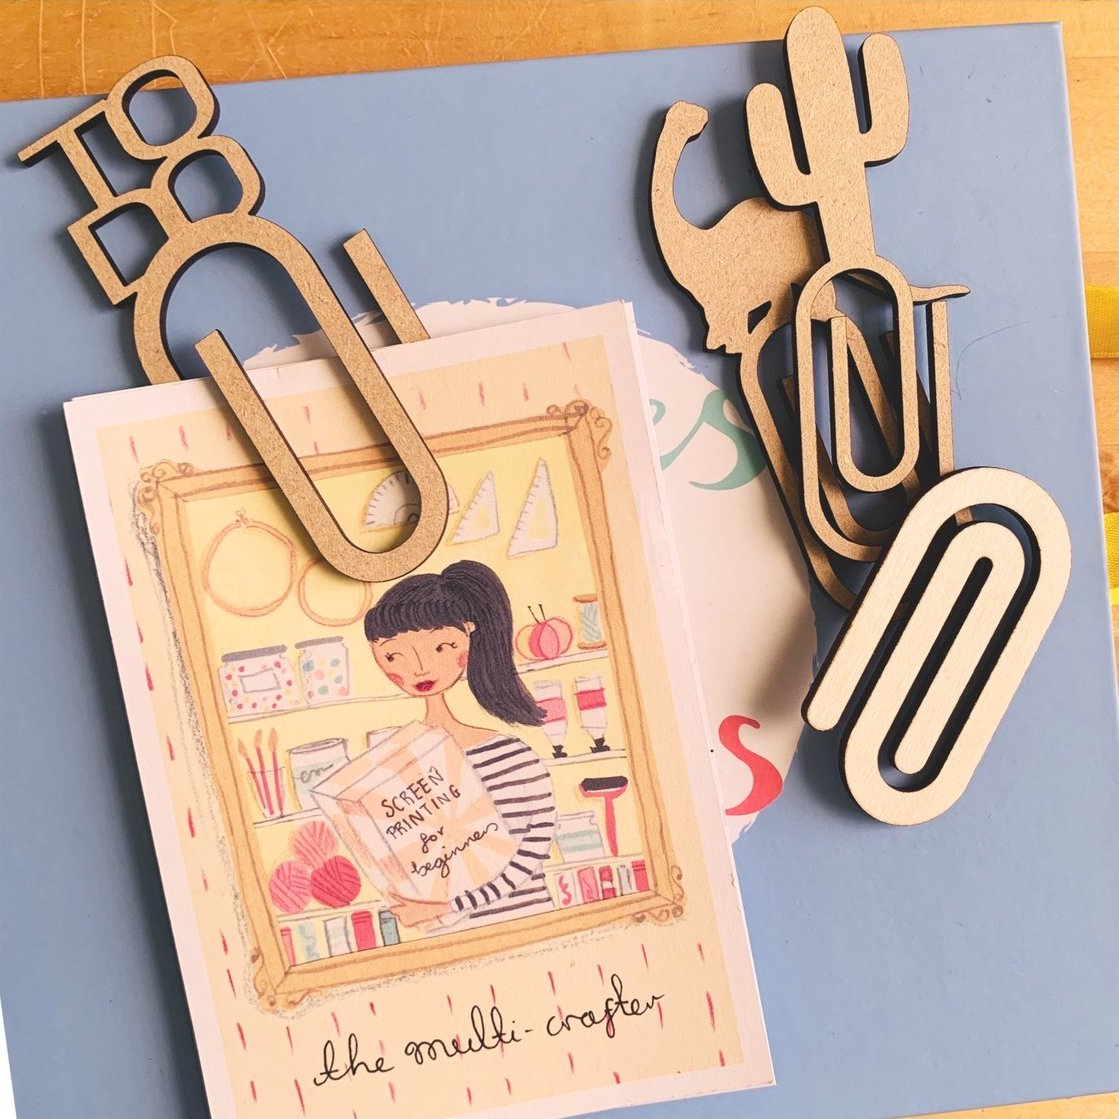 Eco-friendly gift for book lovers - wooden laser cut paperclips created by Tatty Moo